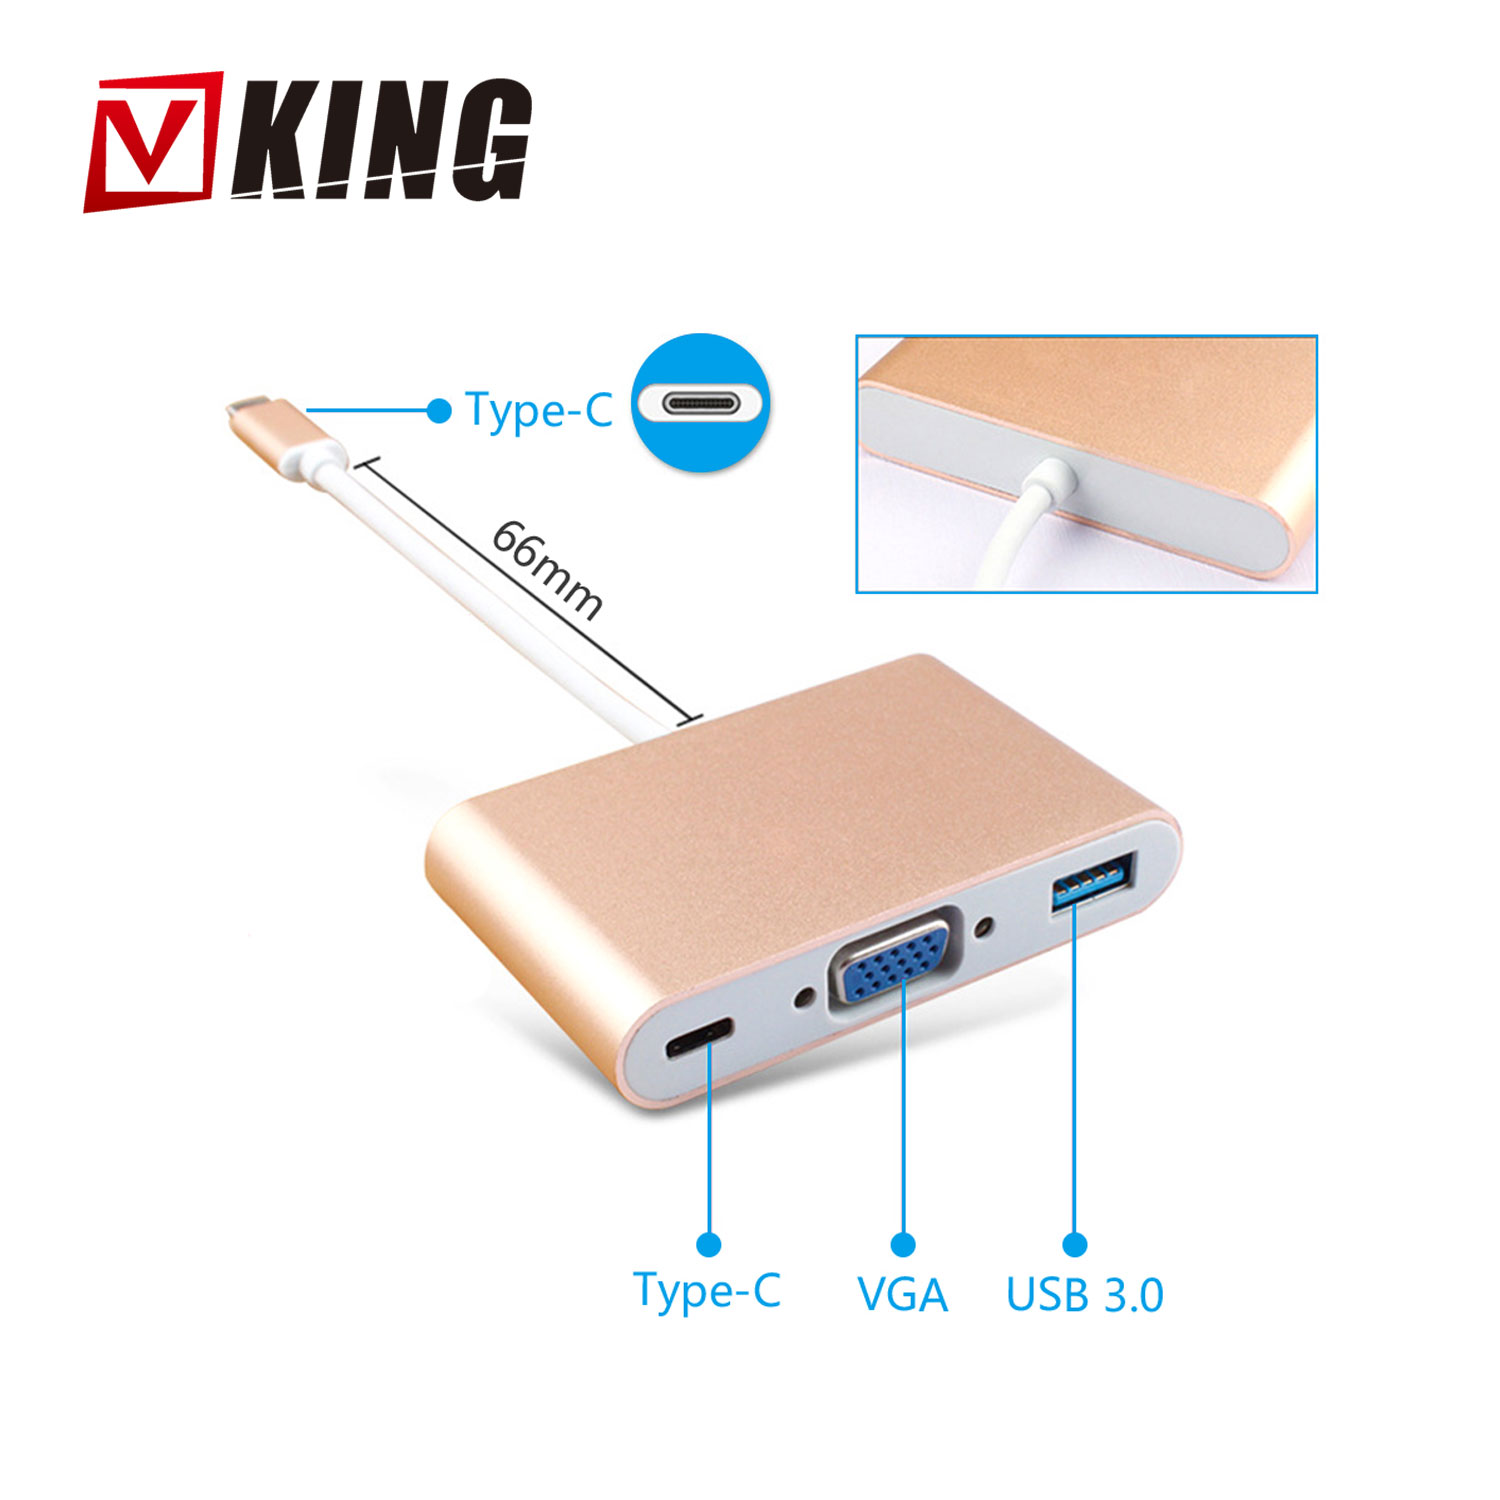 Hot 3 in 1 USB hub 3.0 type c to VGA +USB 3.0+Type C Adapter Converter for New Laptop